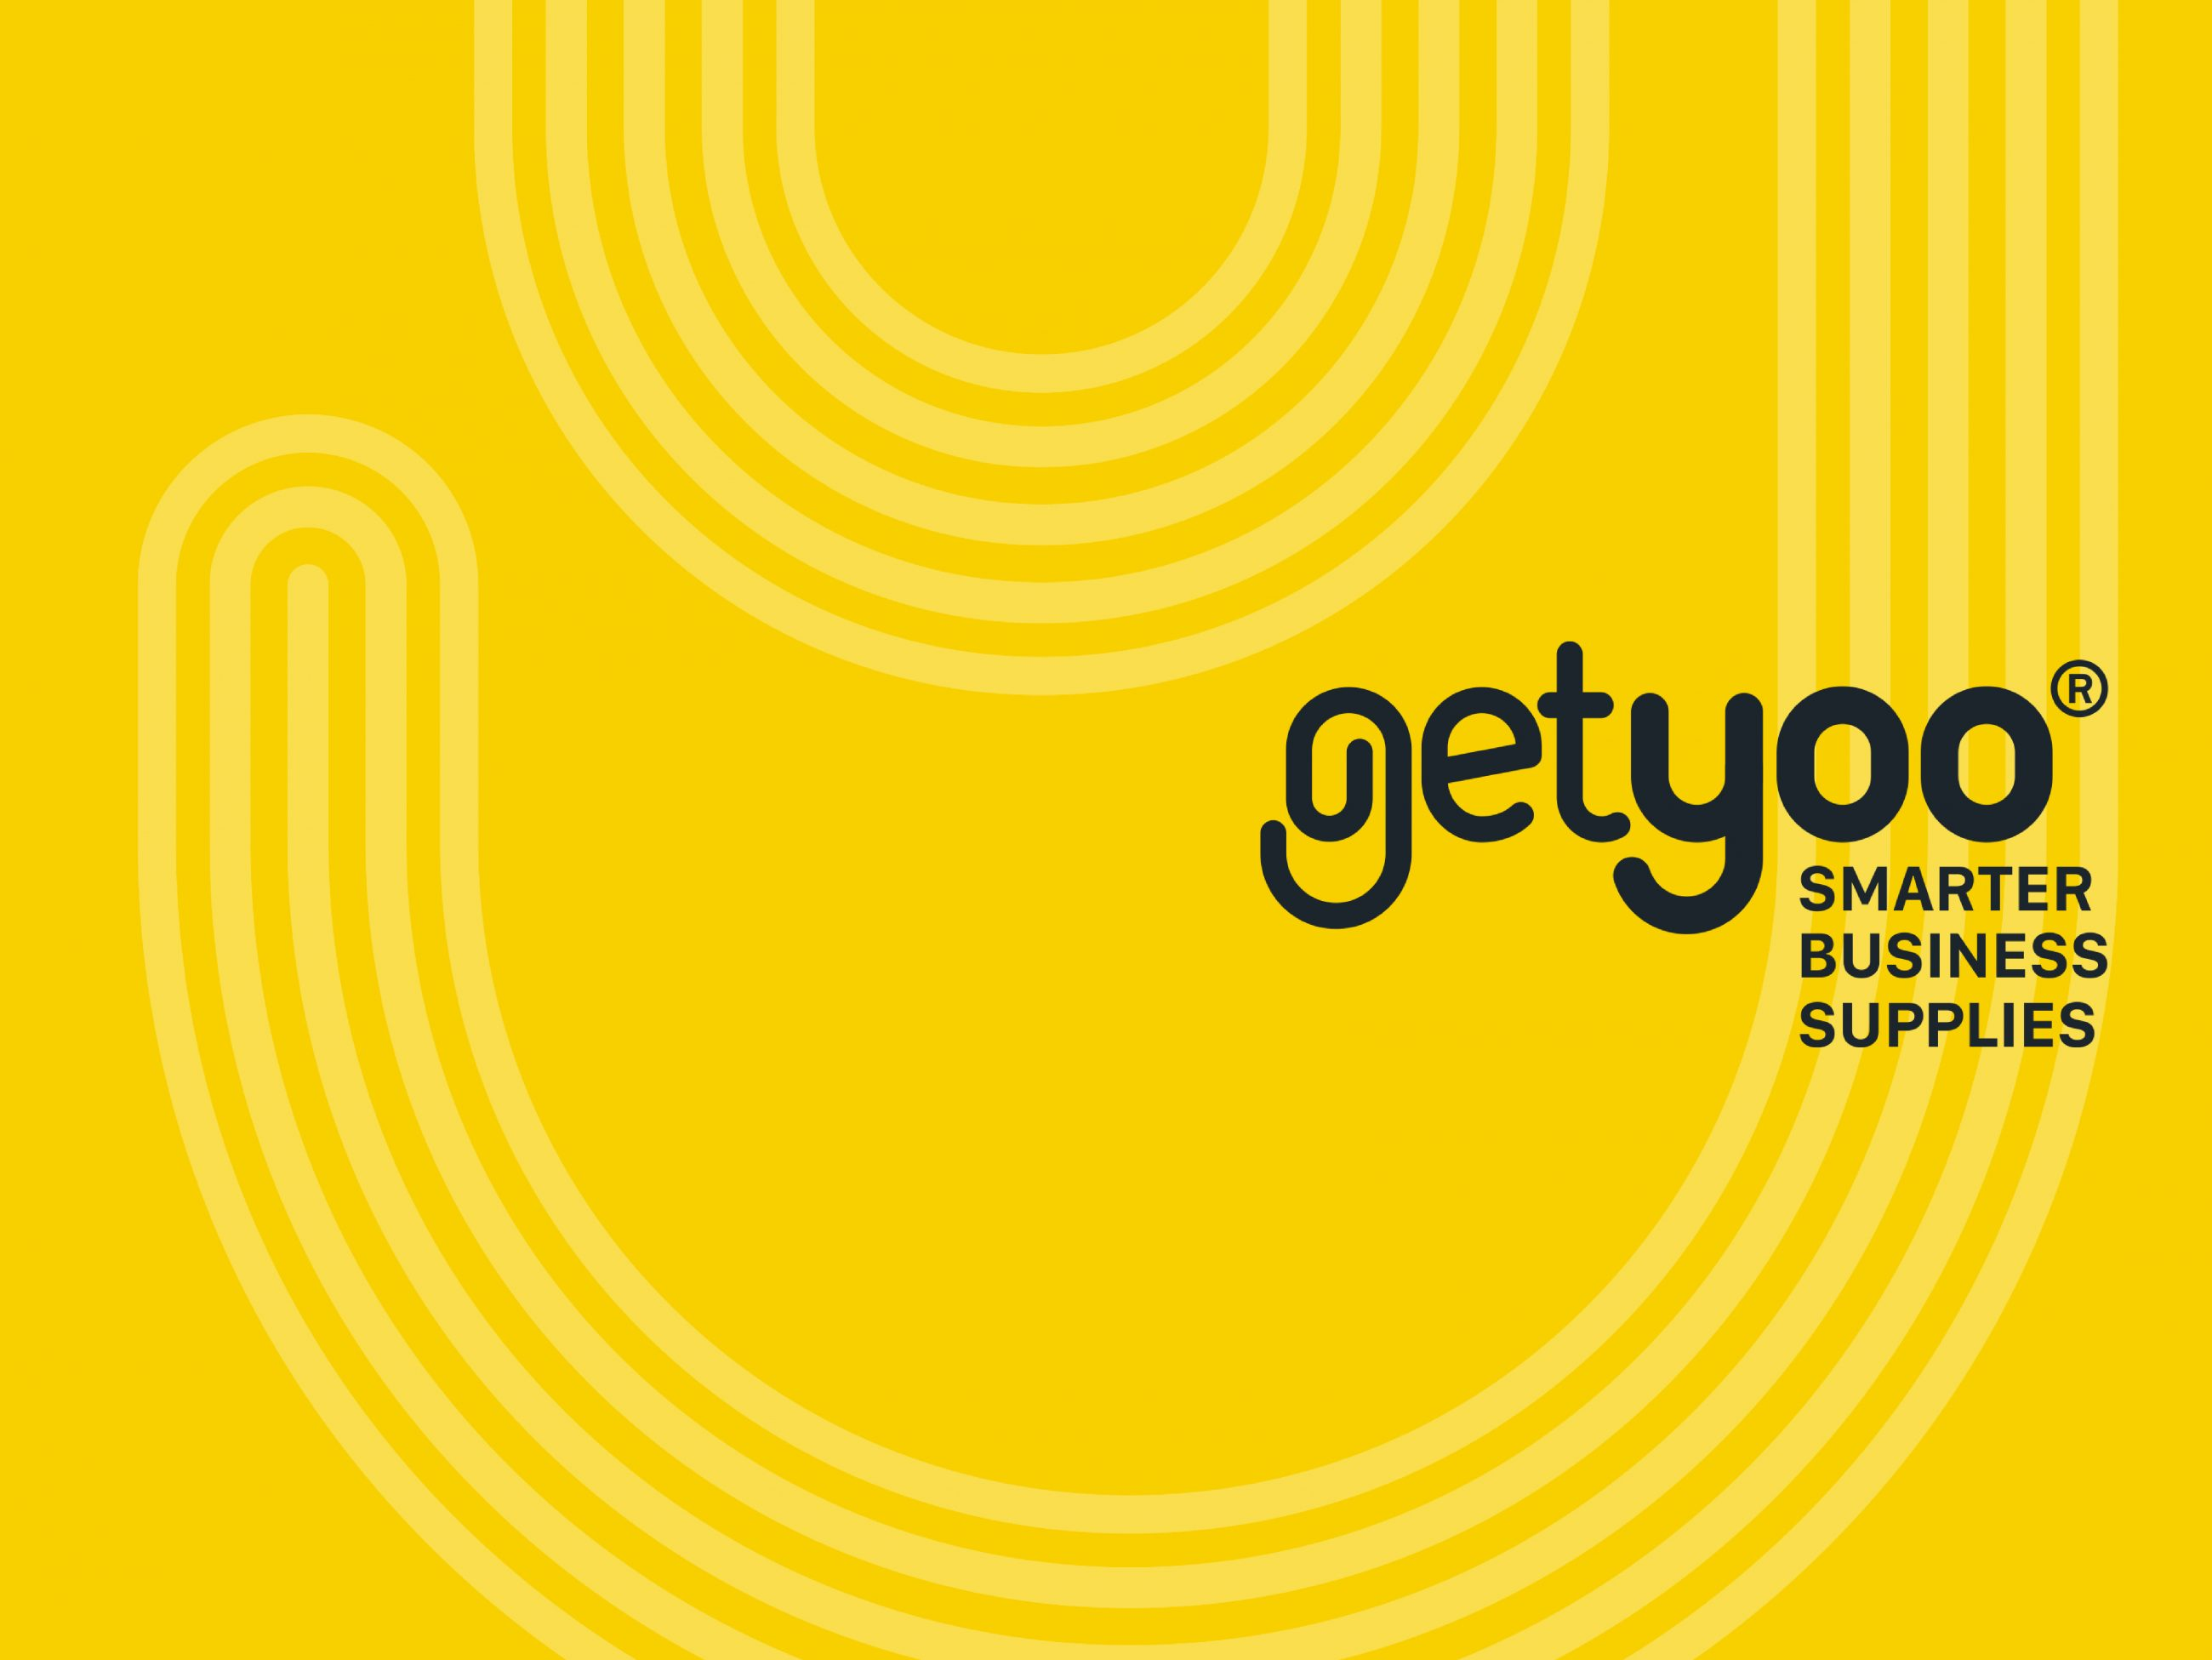 Rebrand logo and visual identity for stationery supplier GetYoo